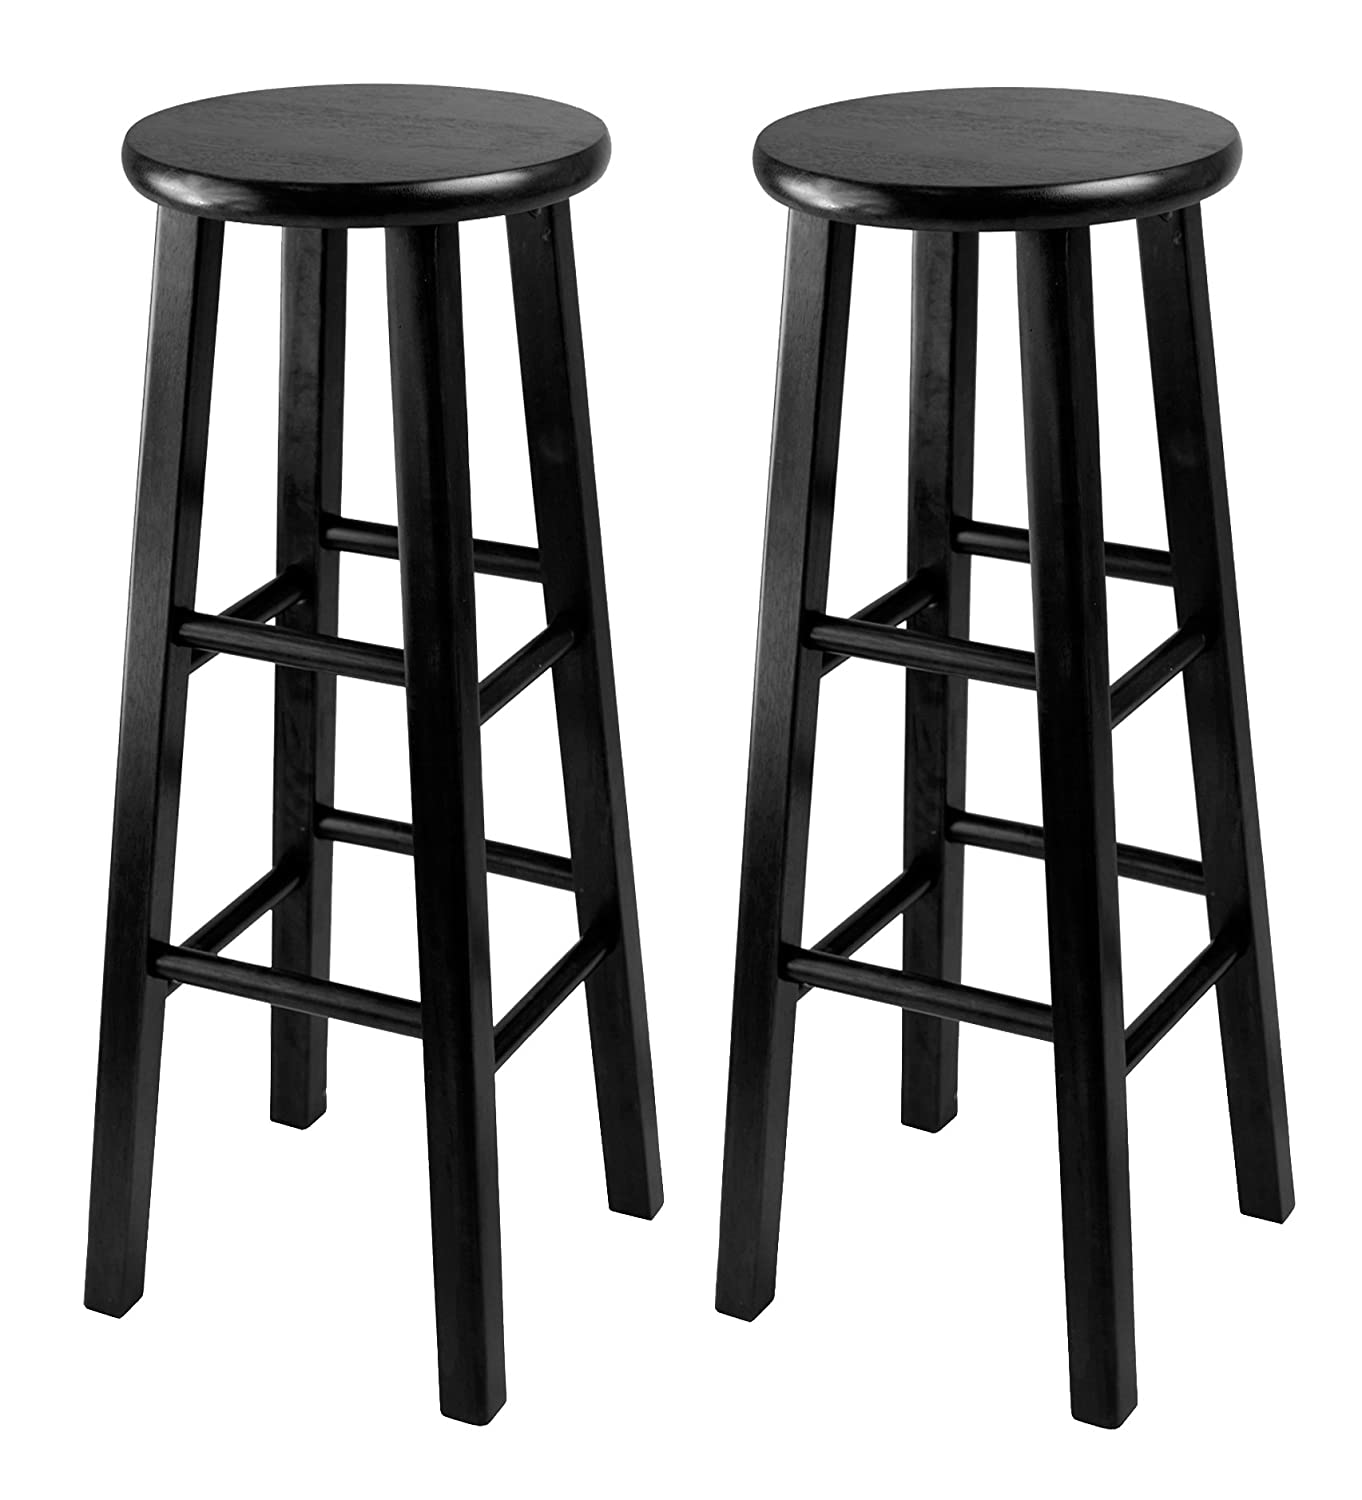 Winsome Black 29-Inch Square Leg Bar Stool